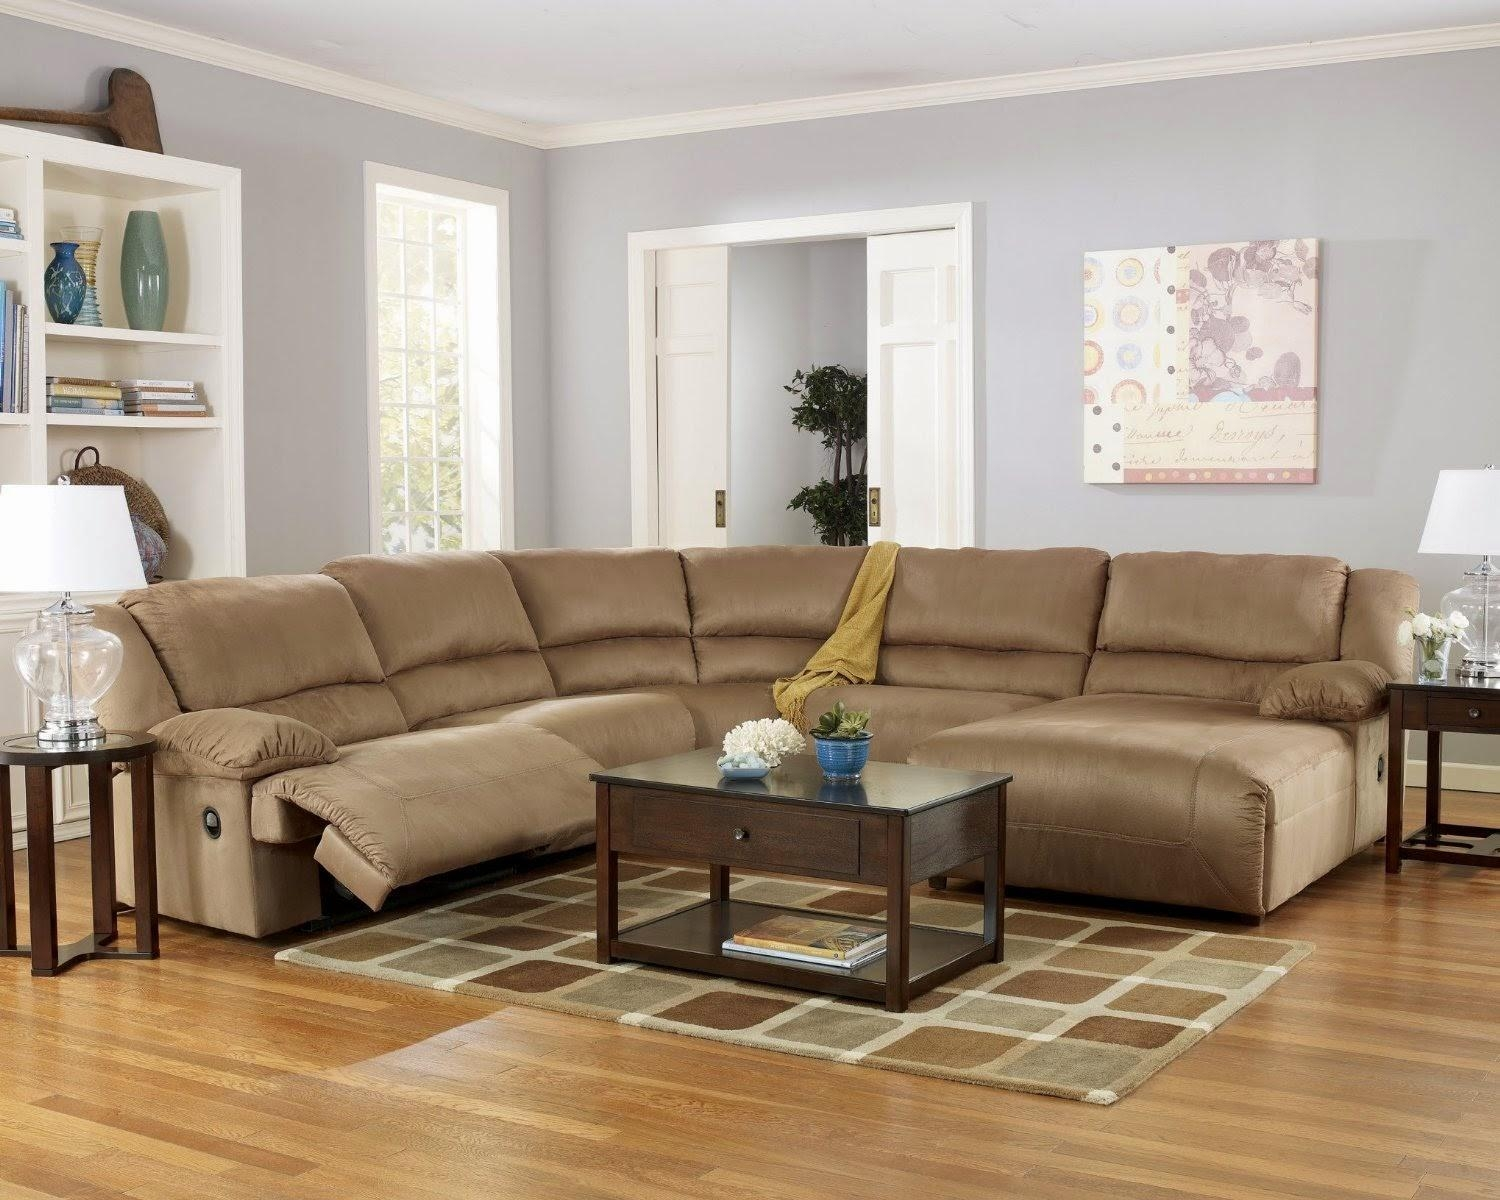 Modern Curved Sofa For Sales: Curved Reclining Sofa Intended For Curved Recliner Sofa (View 17 of 20)